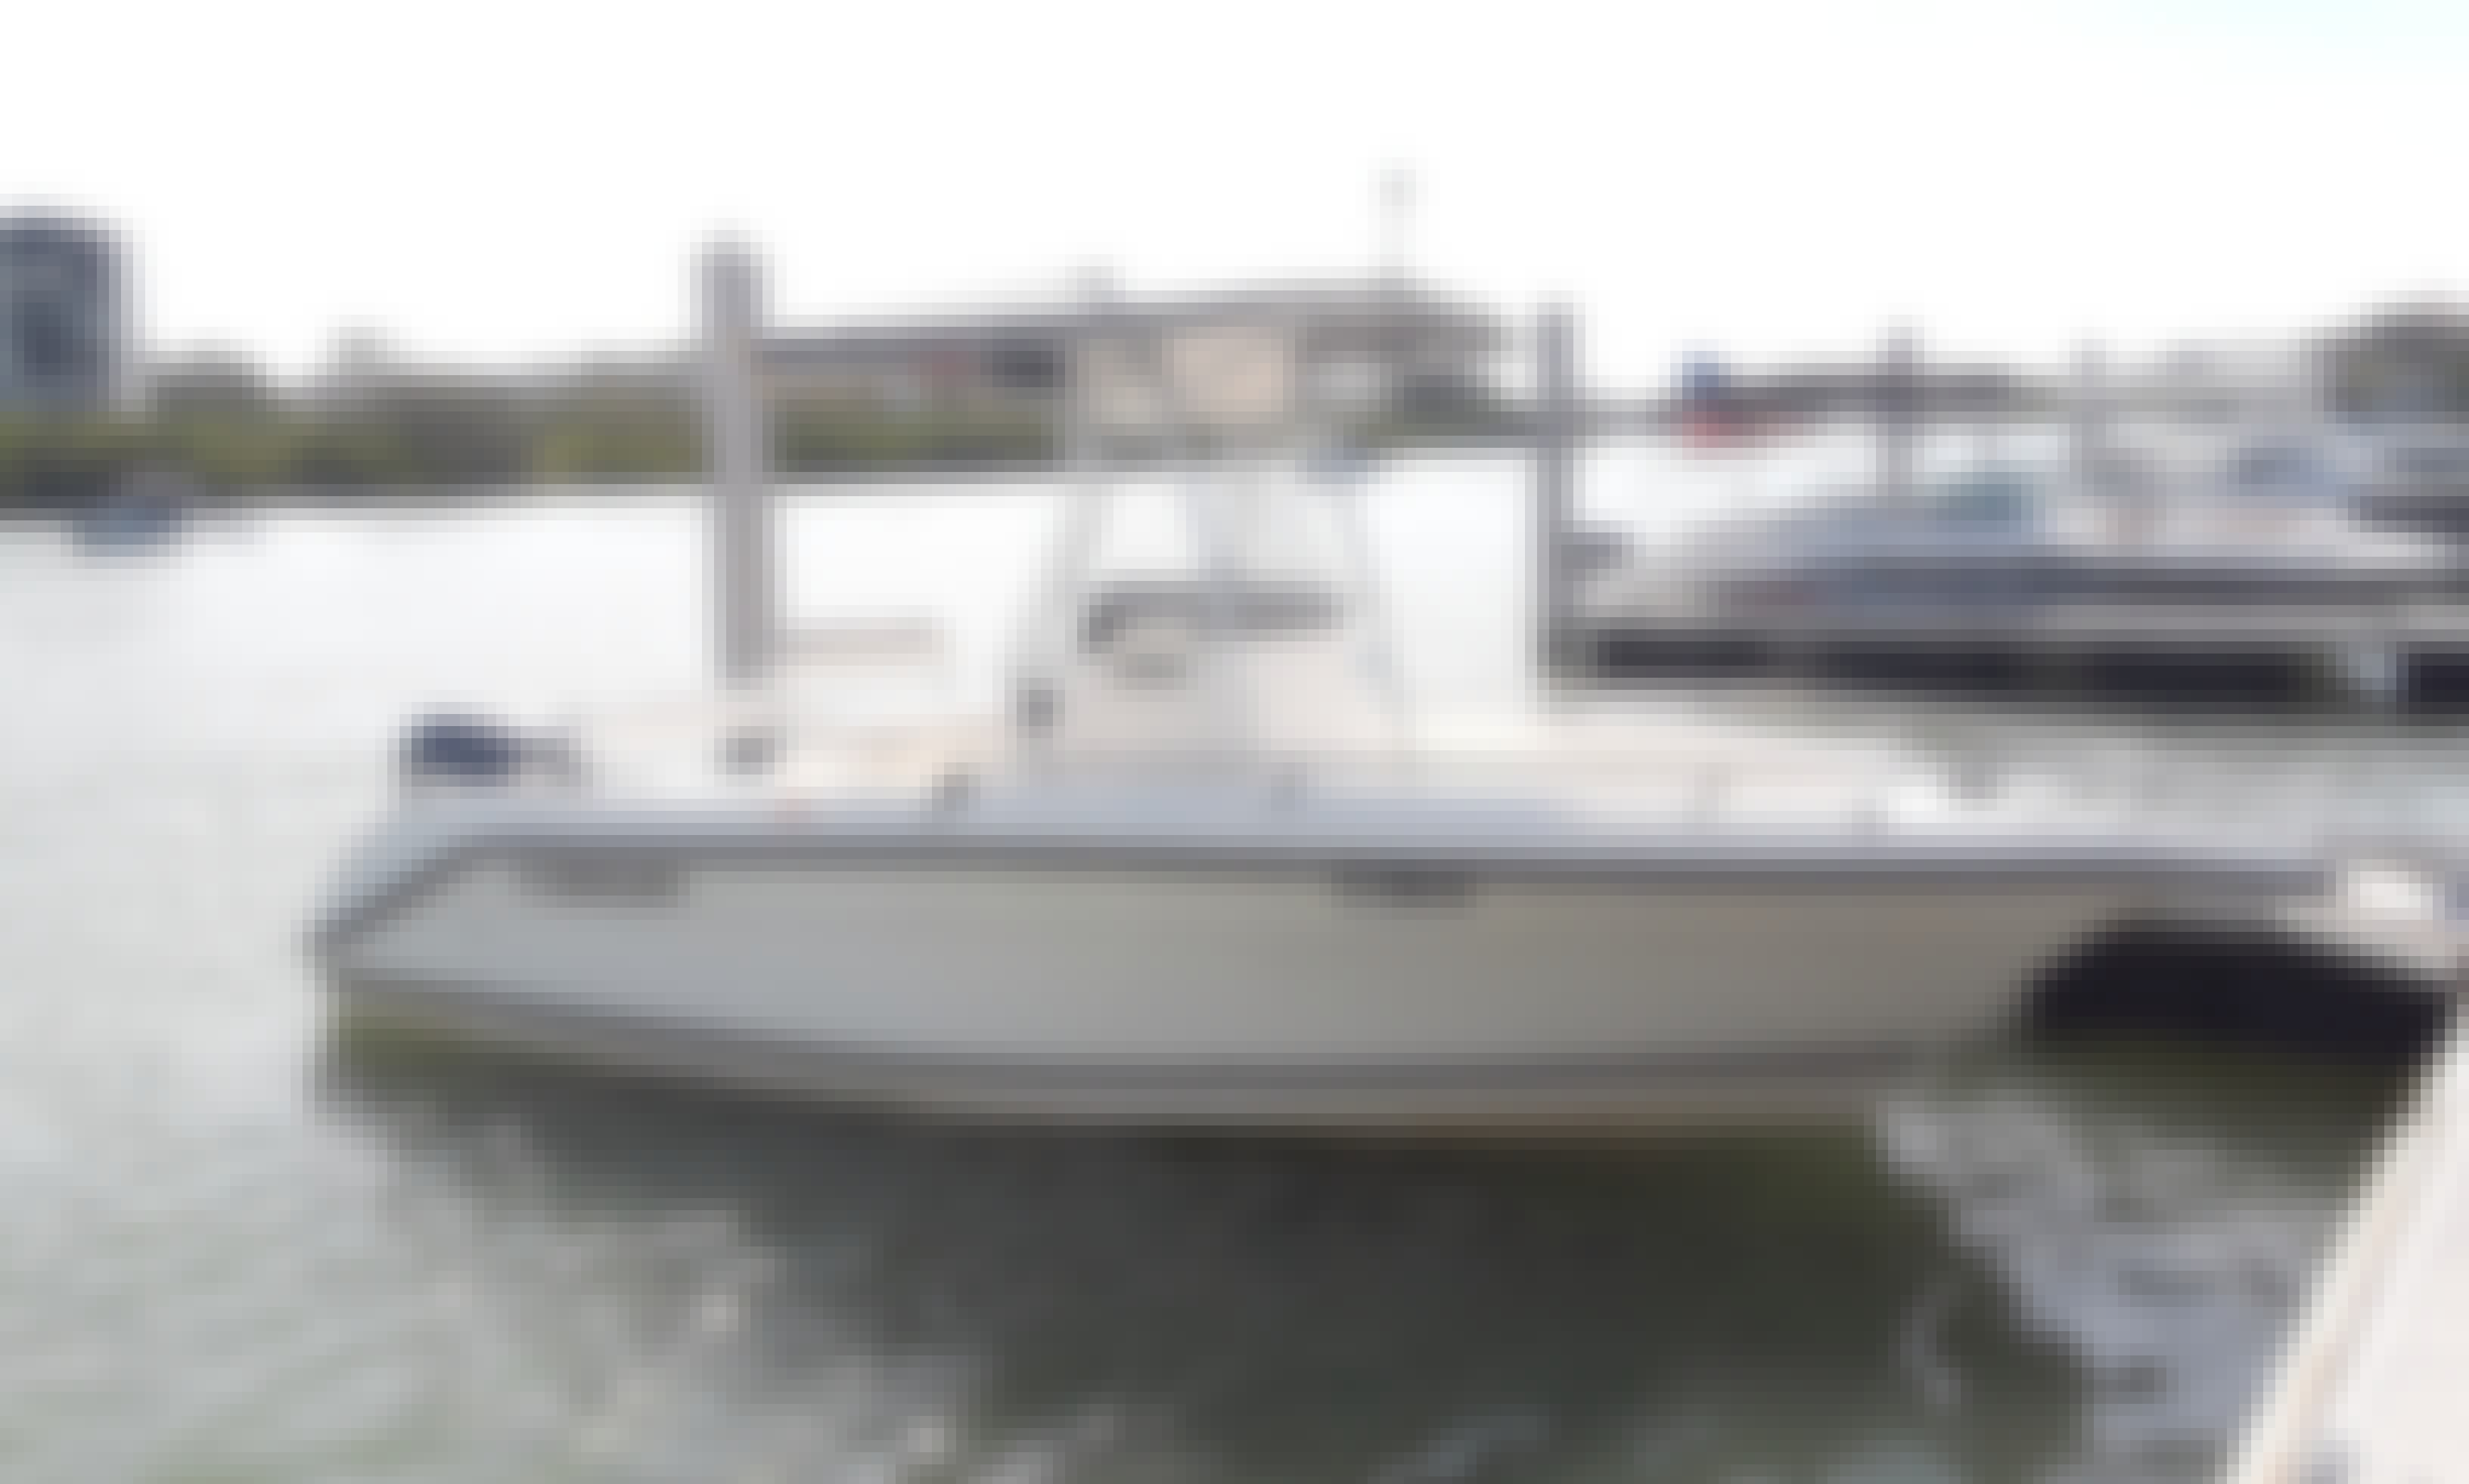 Century 22' Center Console - Scenic and sunset tours, dolphin cruises, fishing and more!